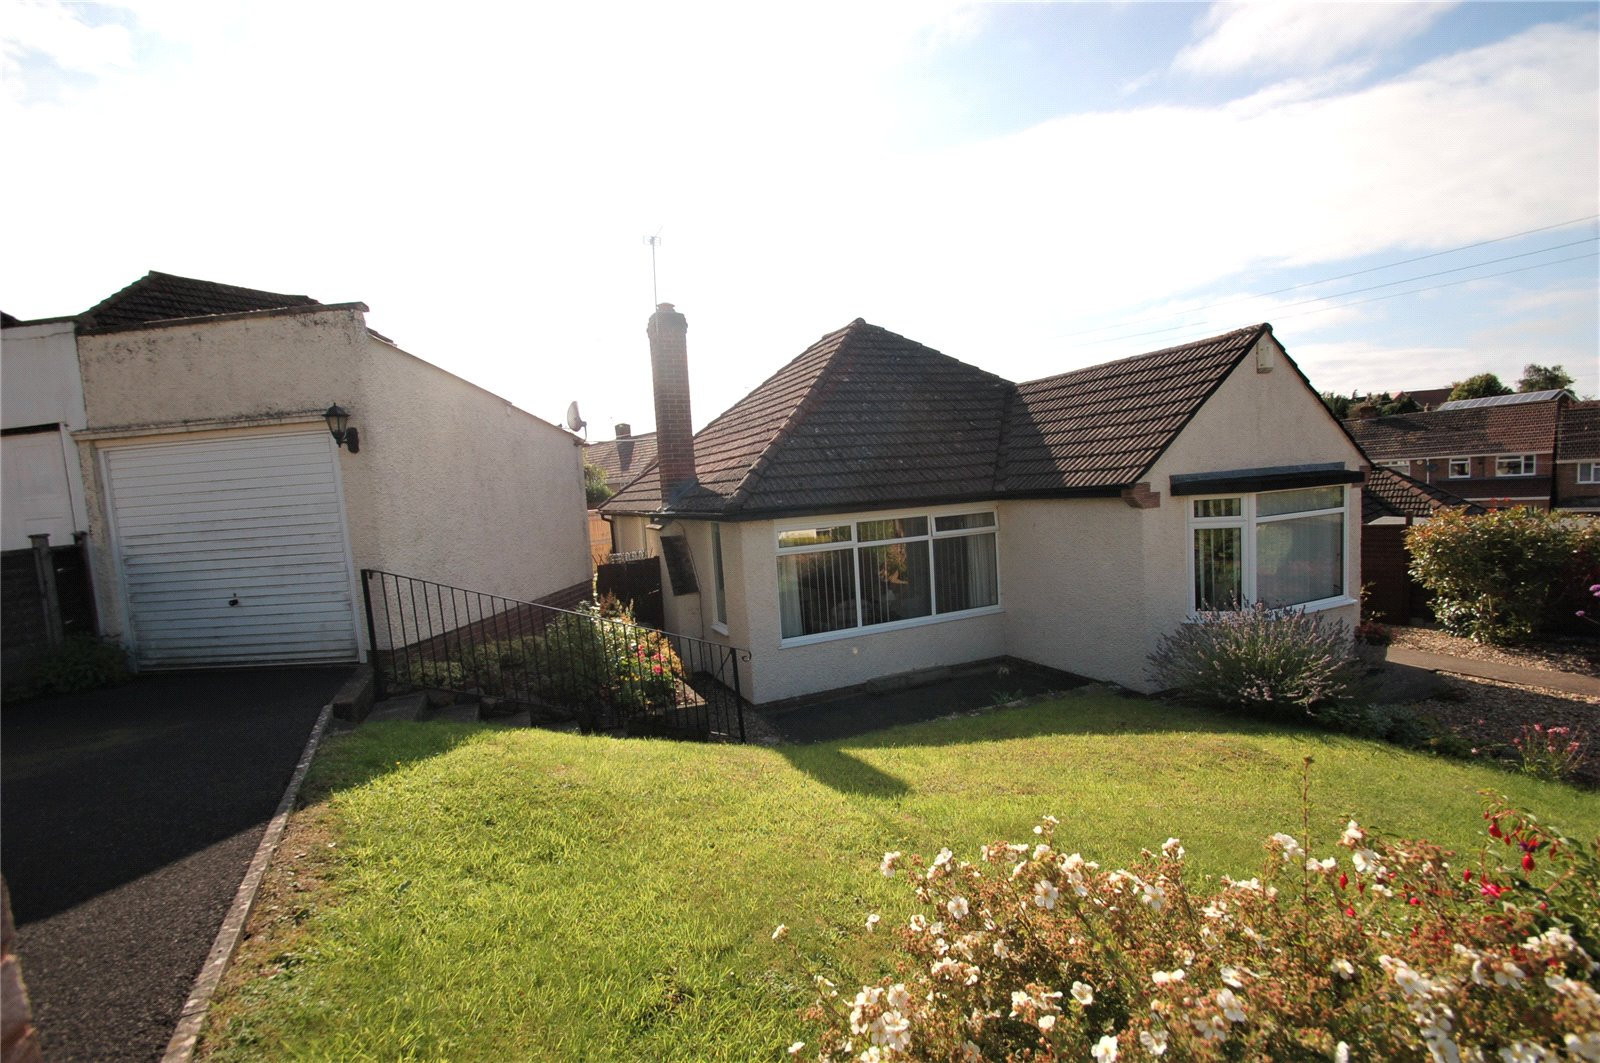 2 Bedrooms Bungalow for sale in Willoughby Road Bridgwater Somerset TA6